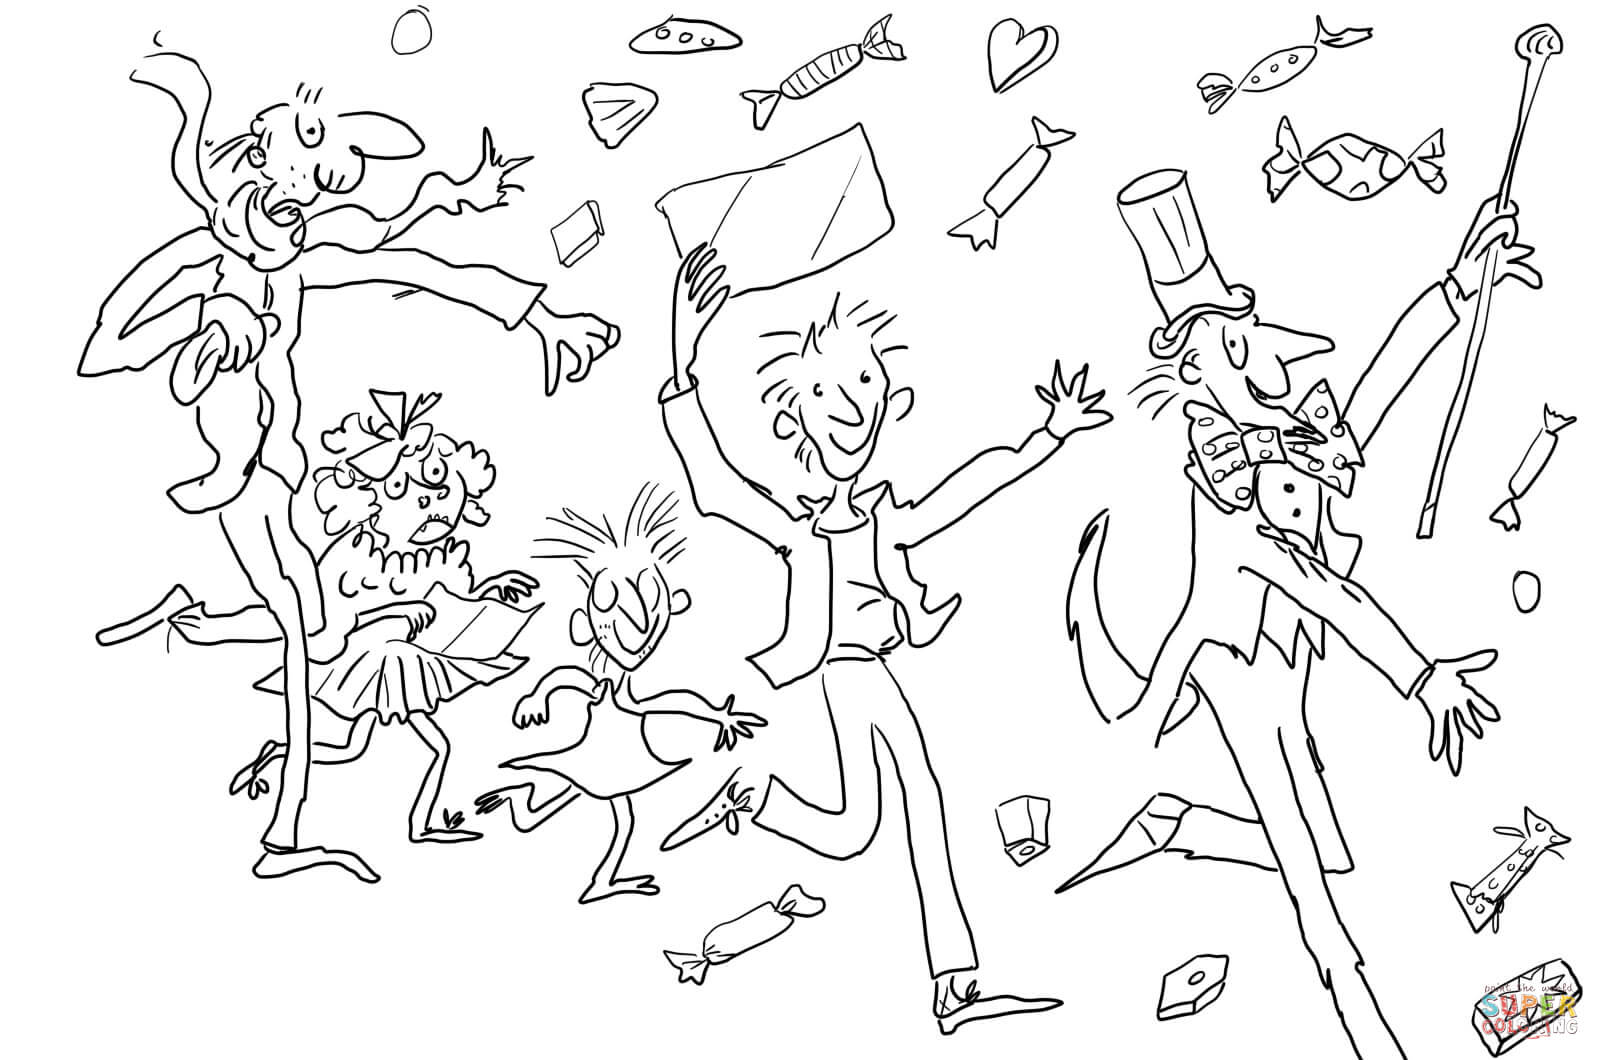 charlie and the chocolate factory coloring sheets children obey your parents coloring pages coloring the chocolate sheets factory and charlie